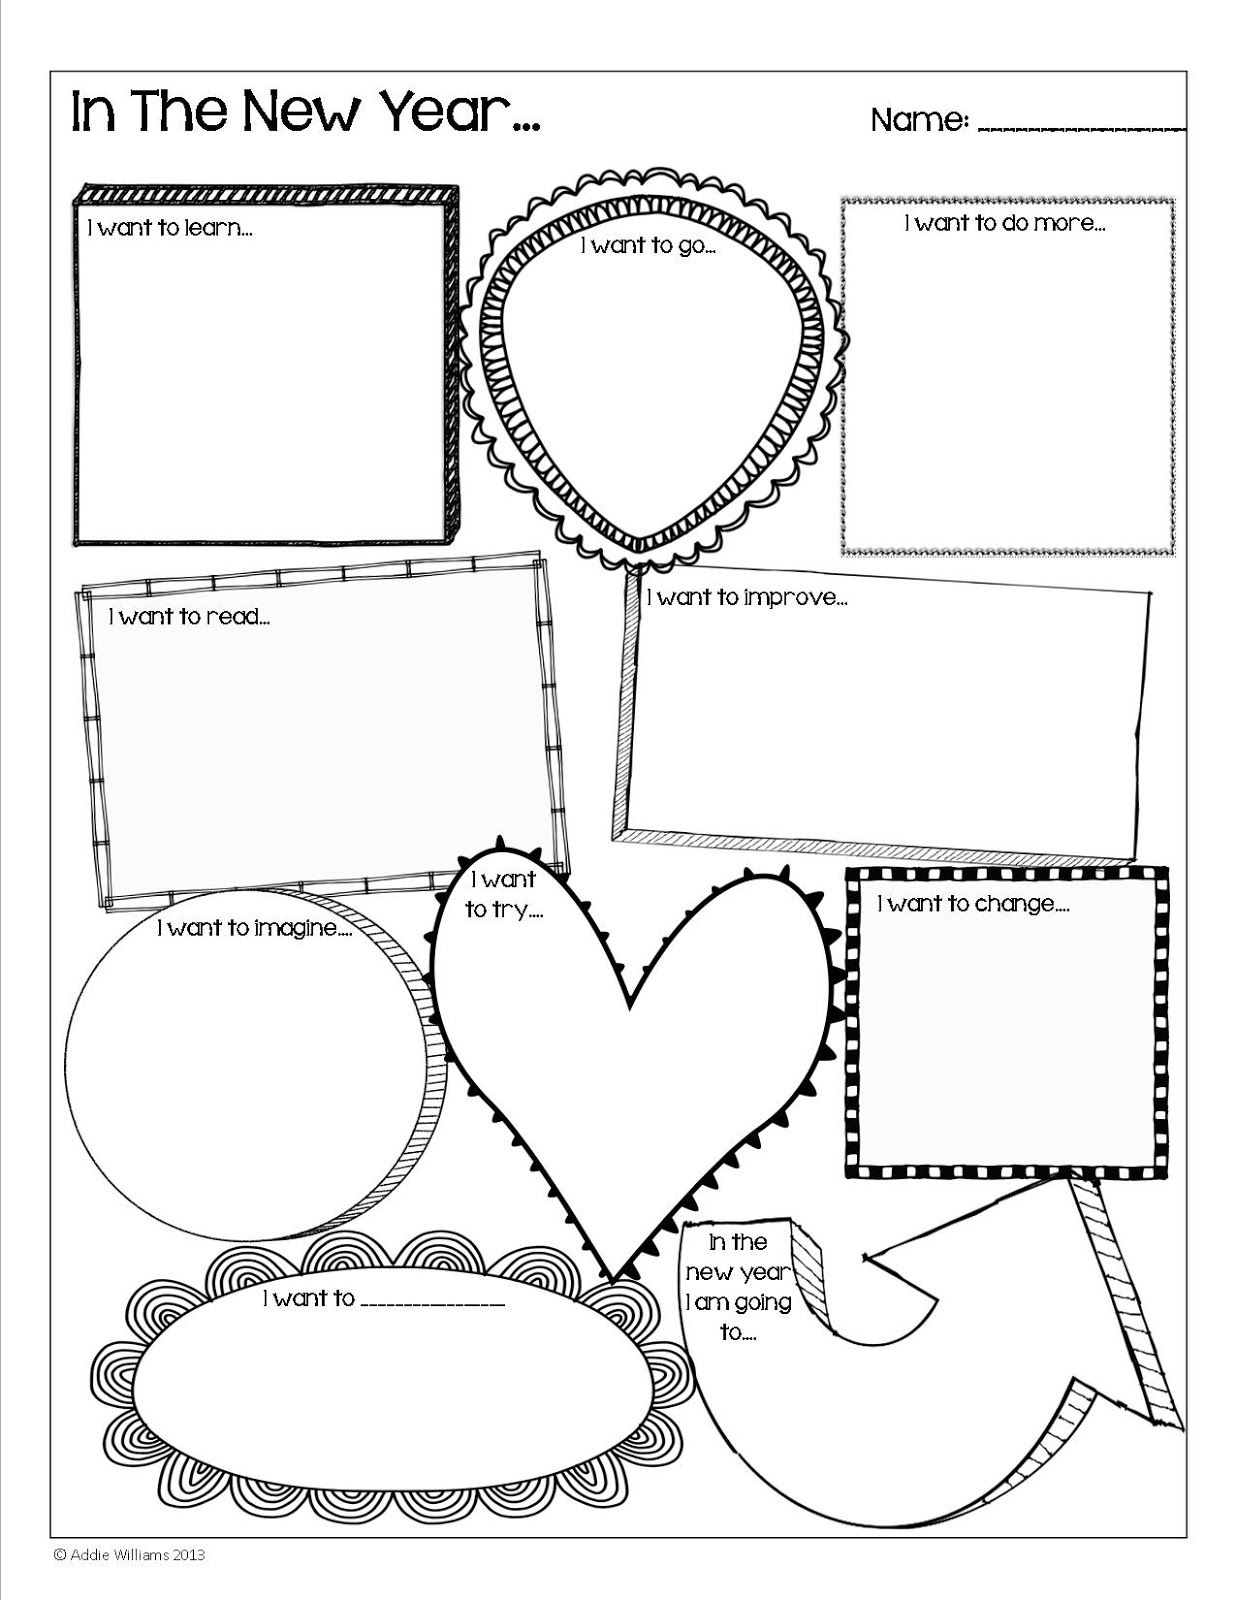 Happy New Year Goal Setting Activity A Fun Free Activity To Start Off The New Year Teaching Activities Goal Setting Activities Student Activities